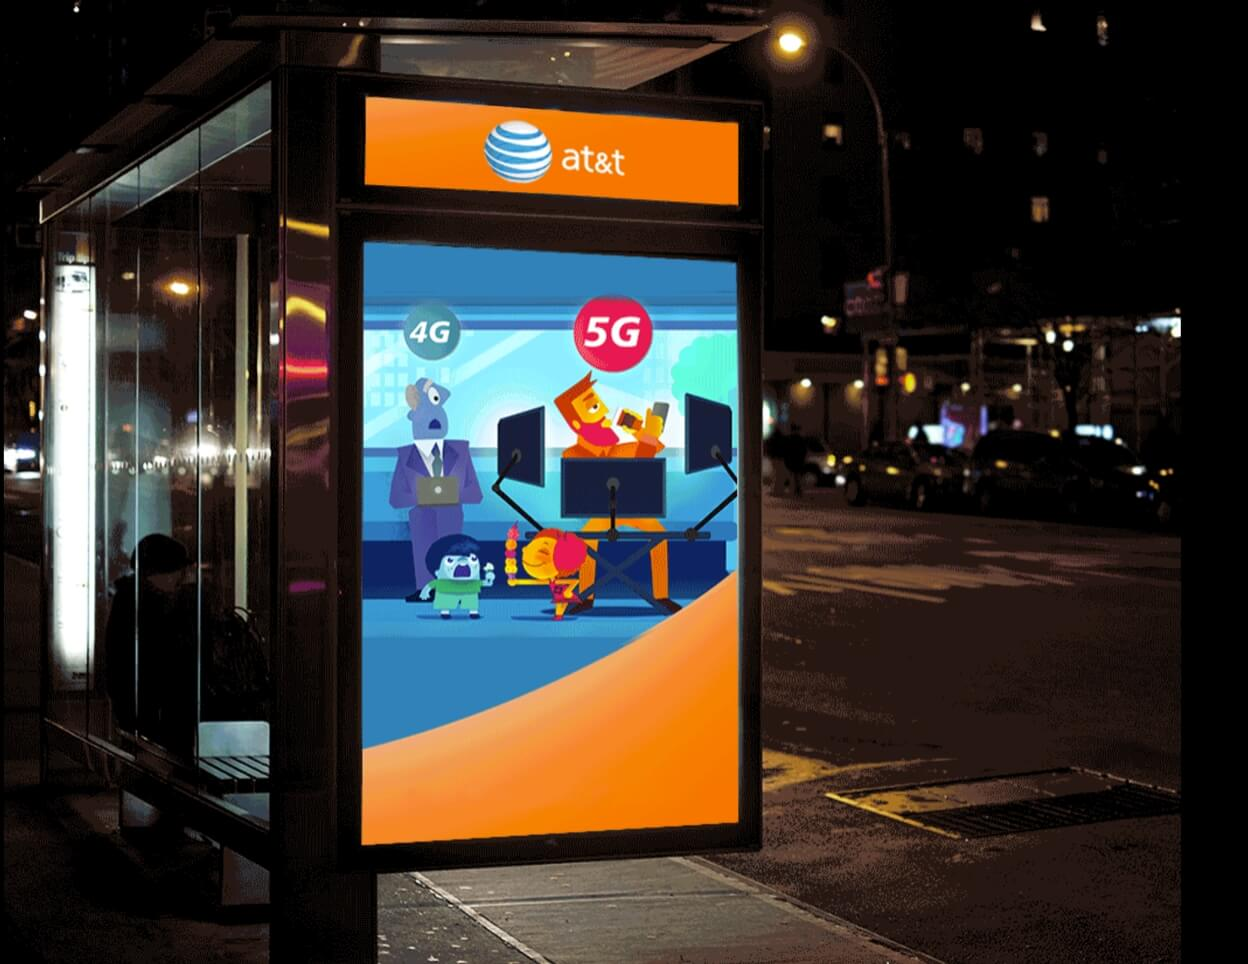 AT&T frees up additional spectrum by terminating 2G network